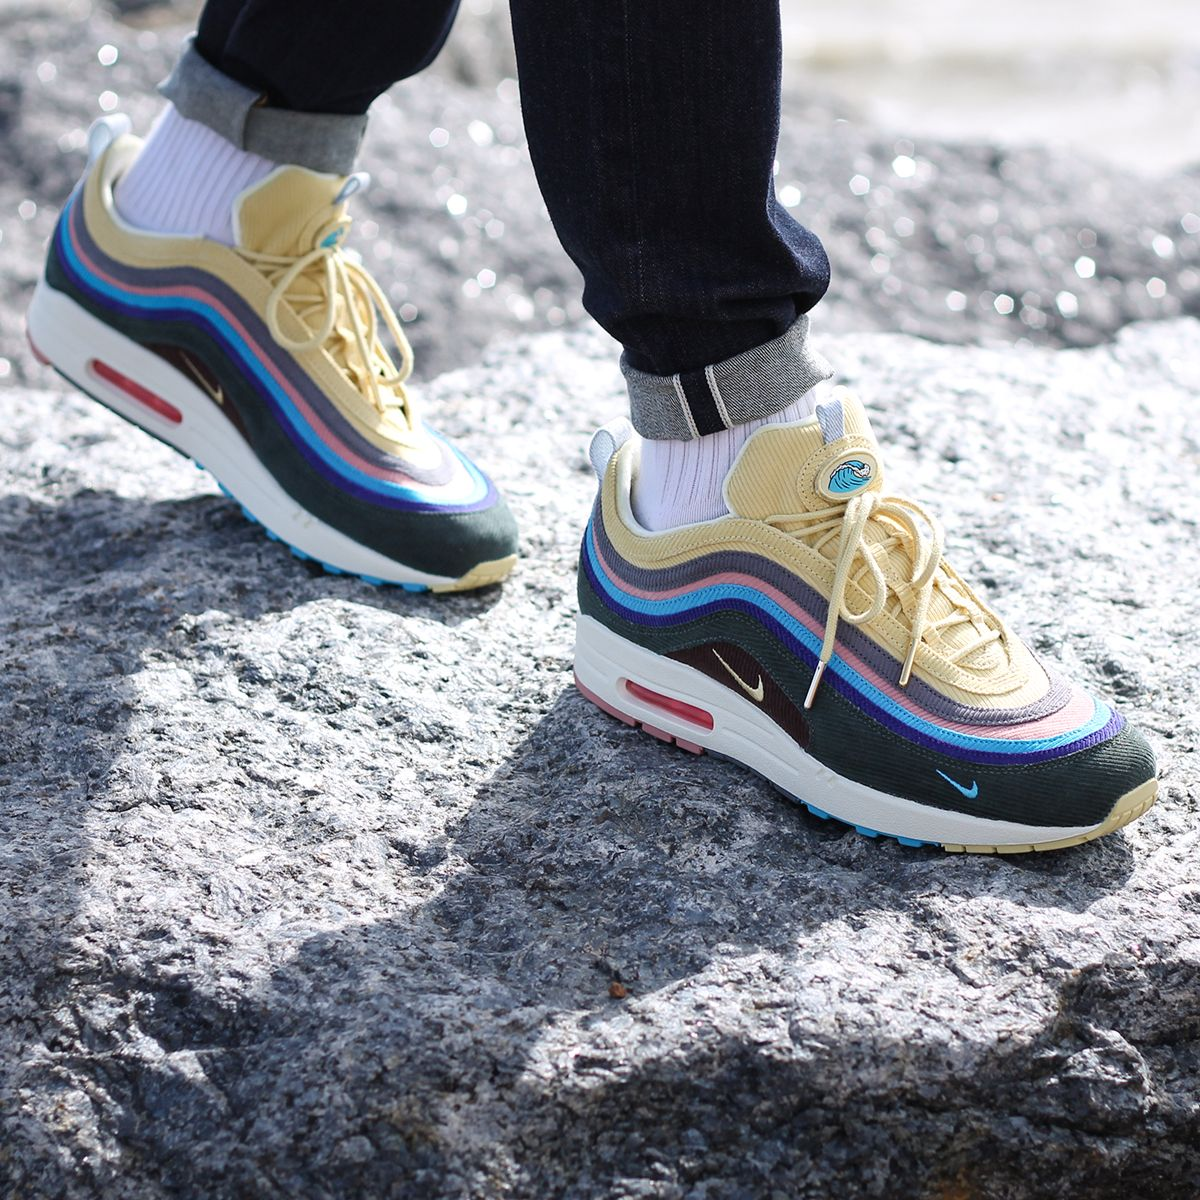 buy online 433a7 3b81f The Nike Air Max 1 97 Sean Wotherspoon Sneakers at Urban Industry, UK